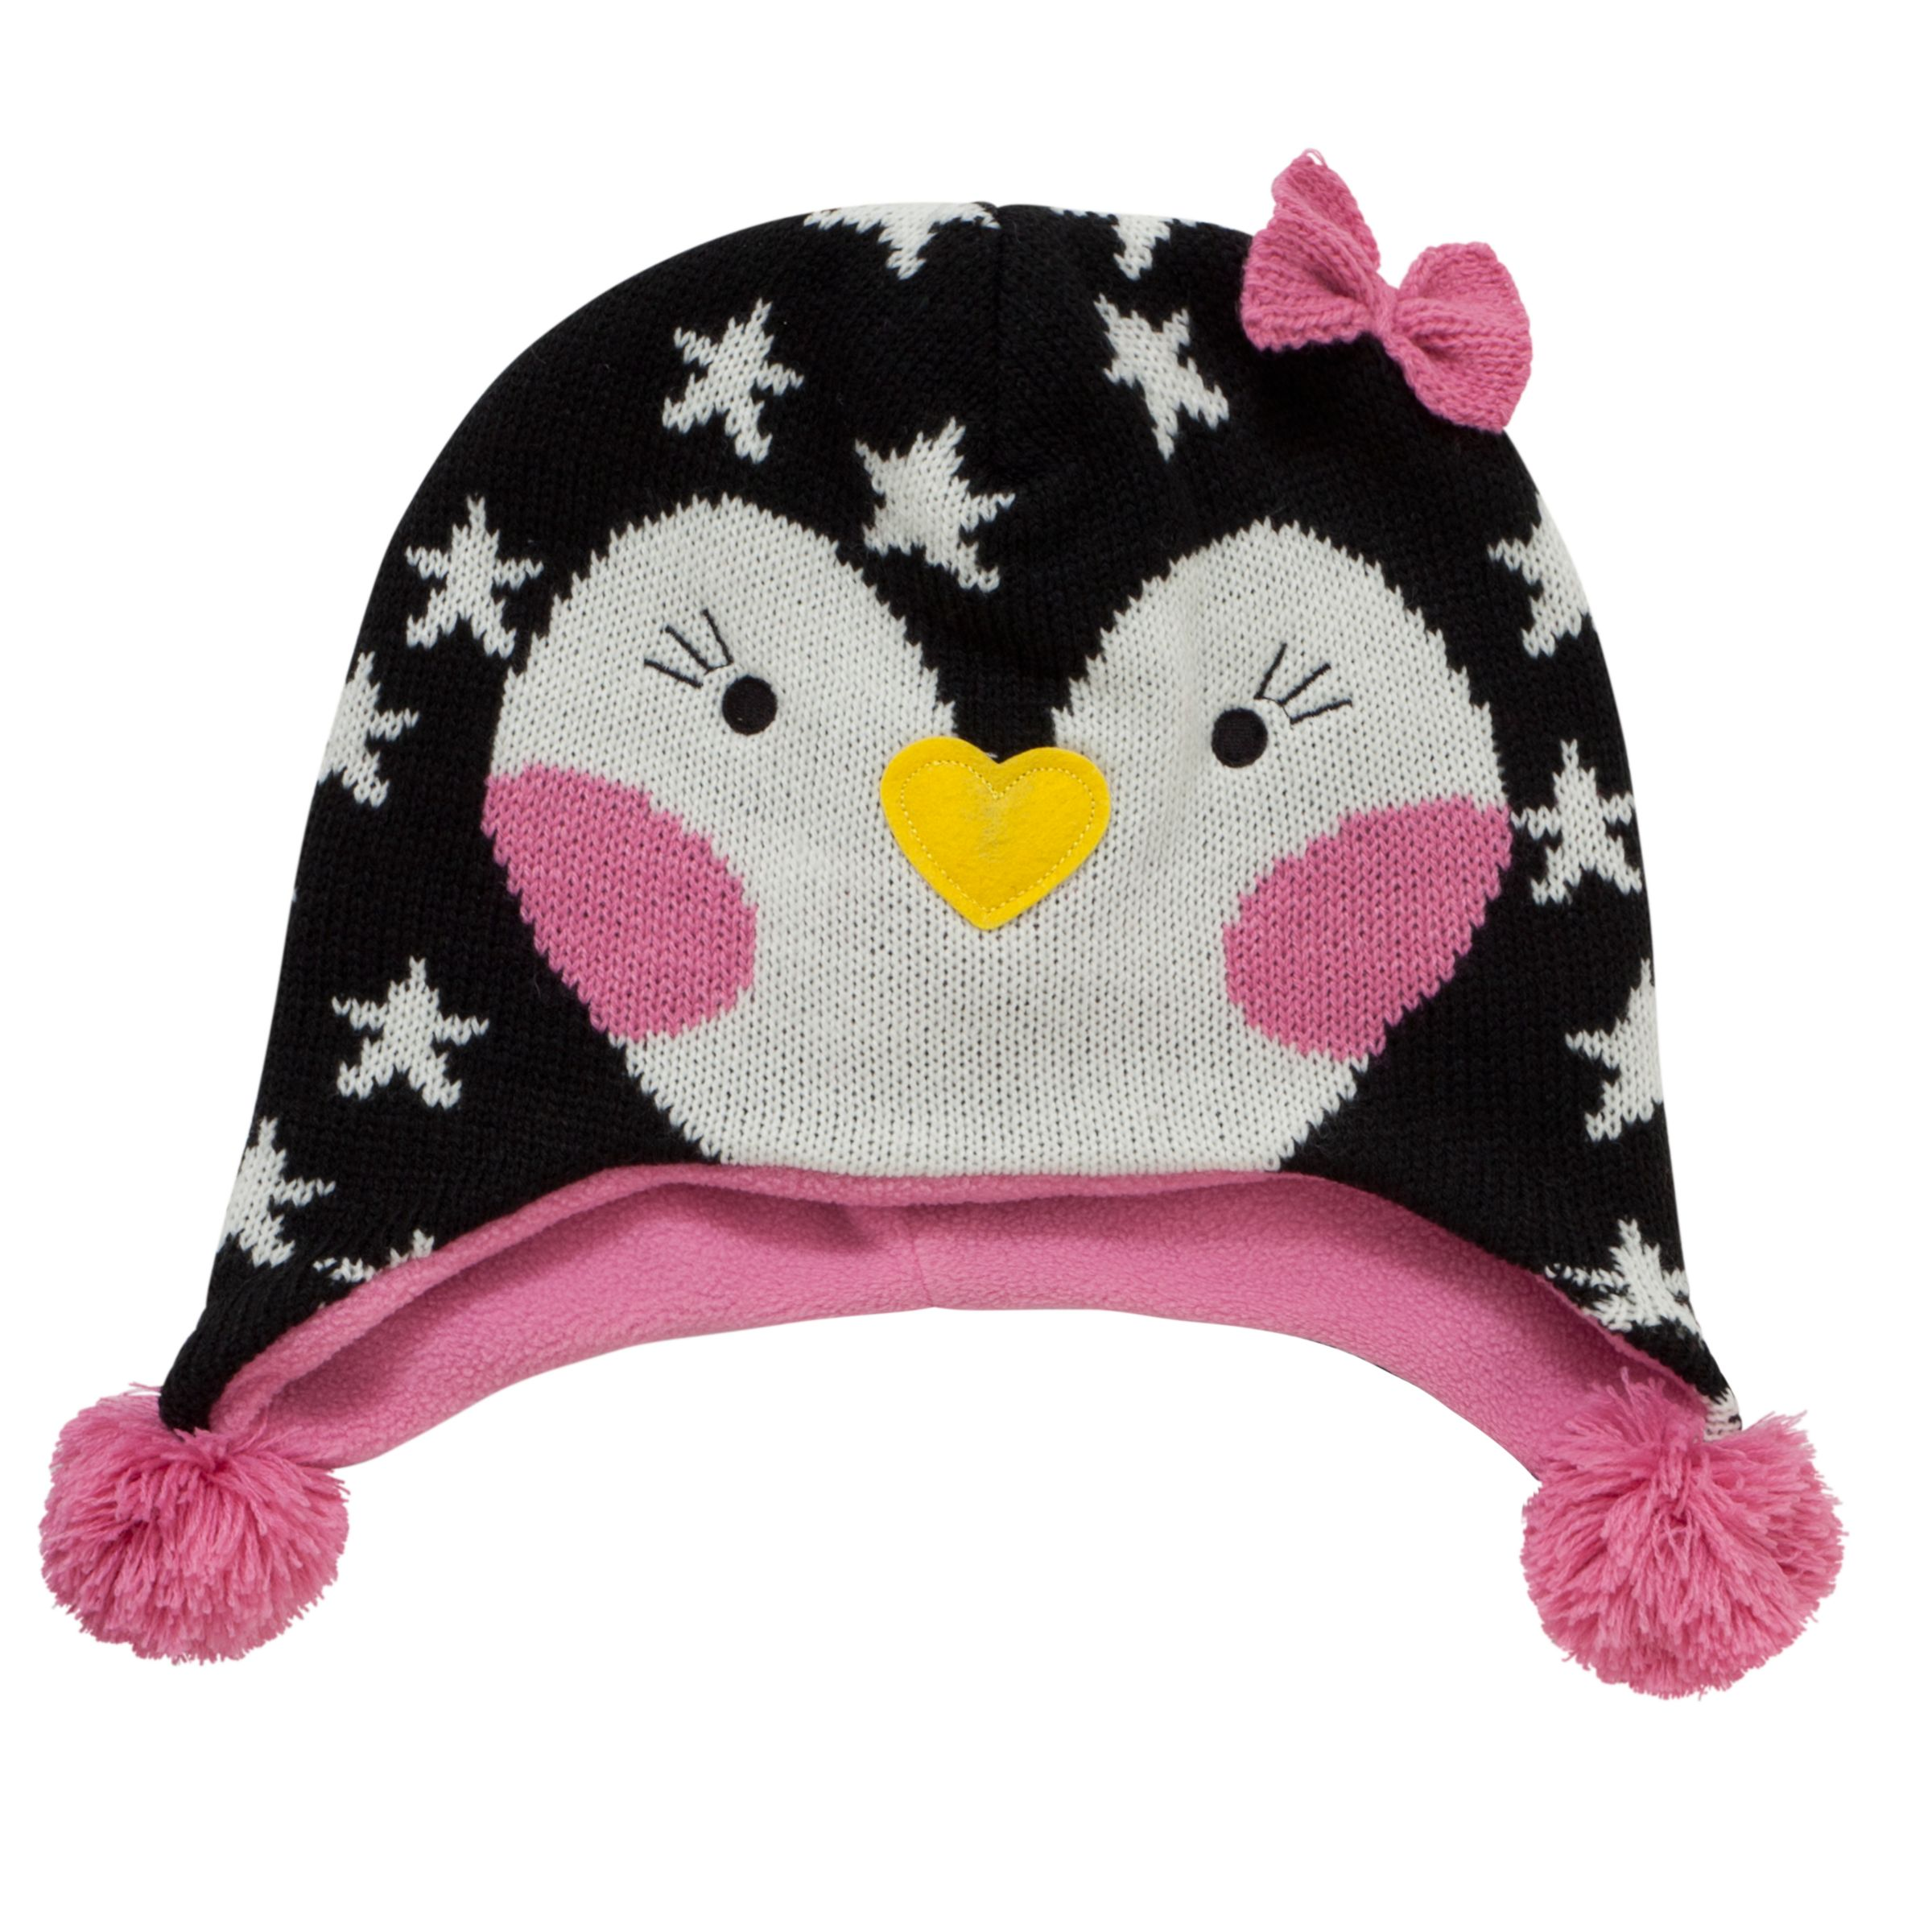 Girls Knitted Hats, Scarves & Gloves John Lewis